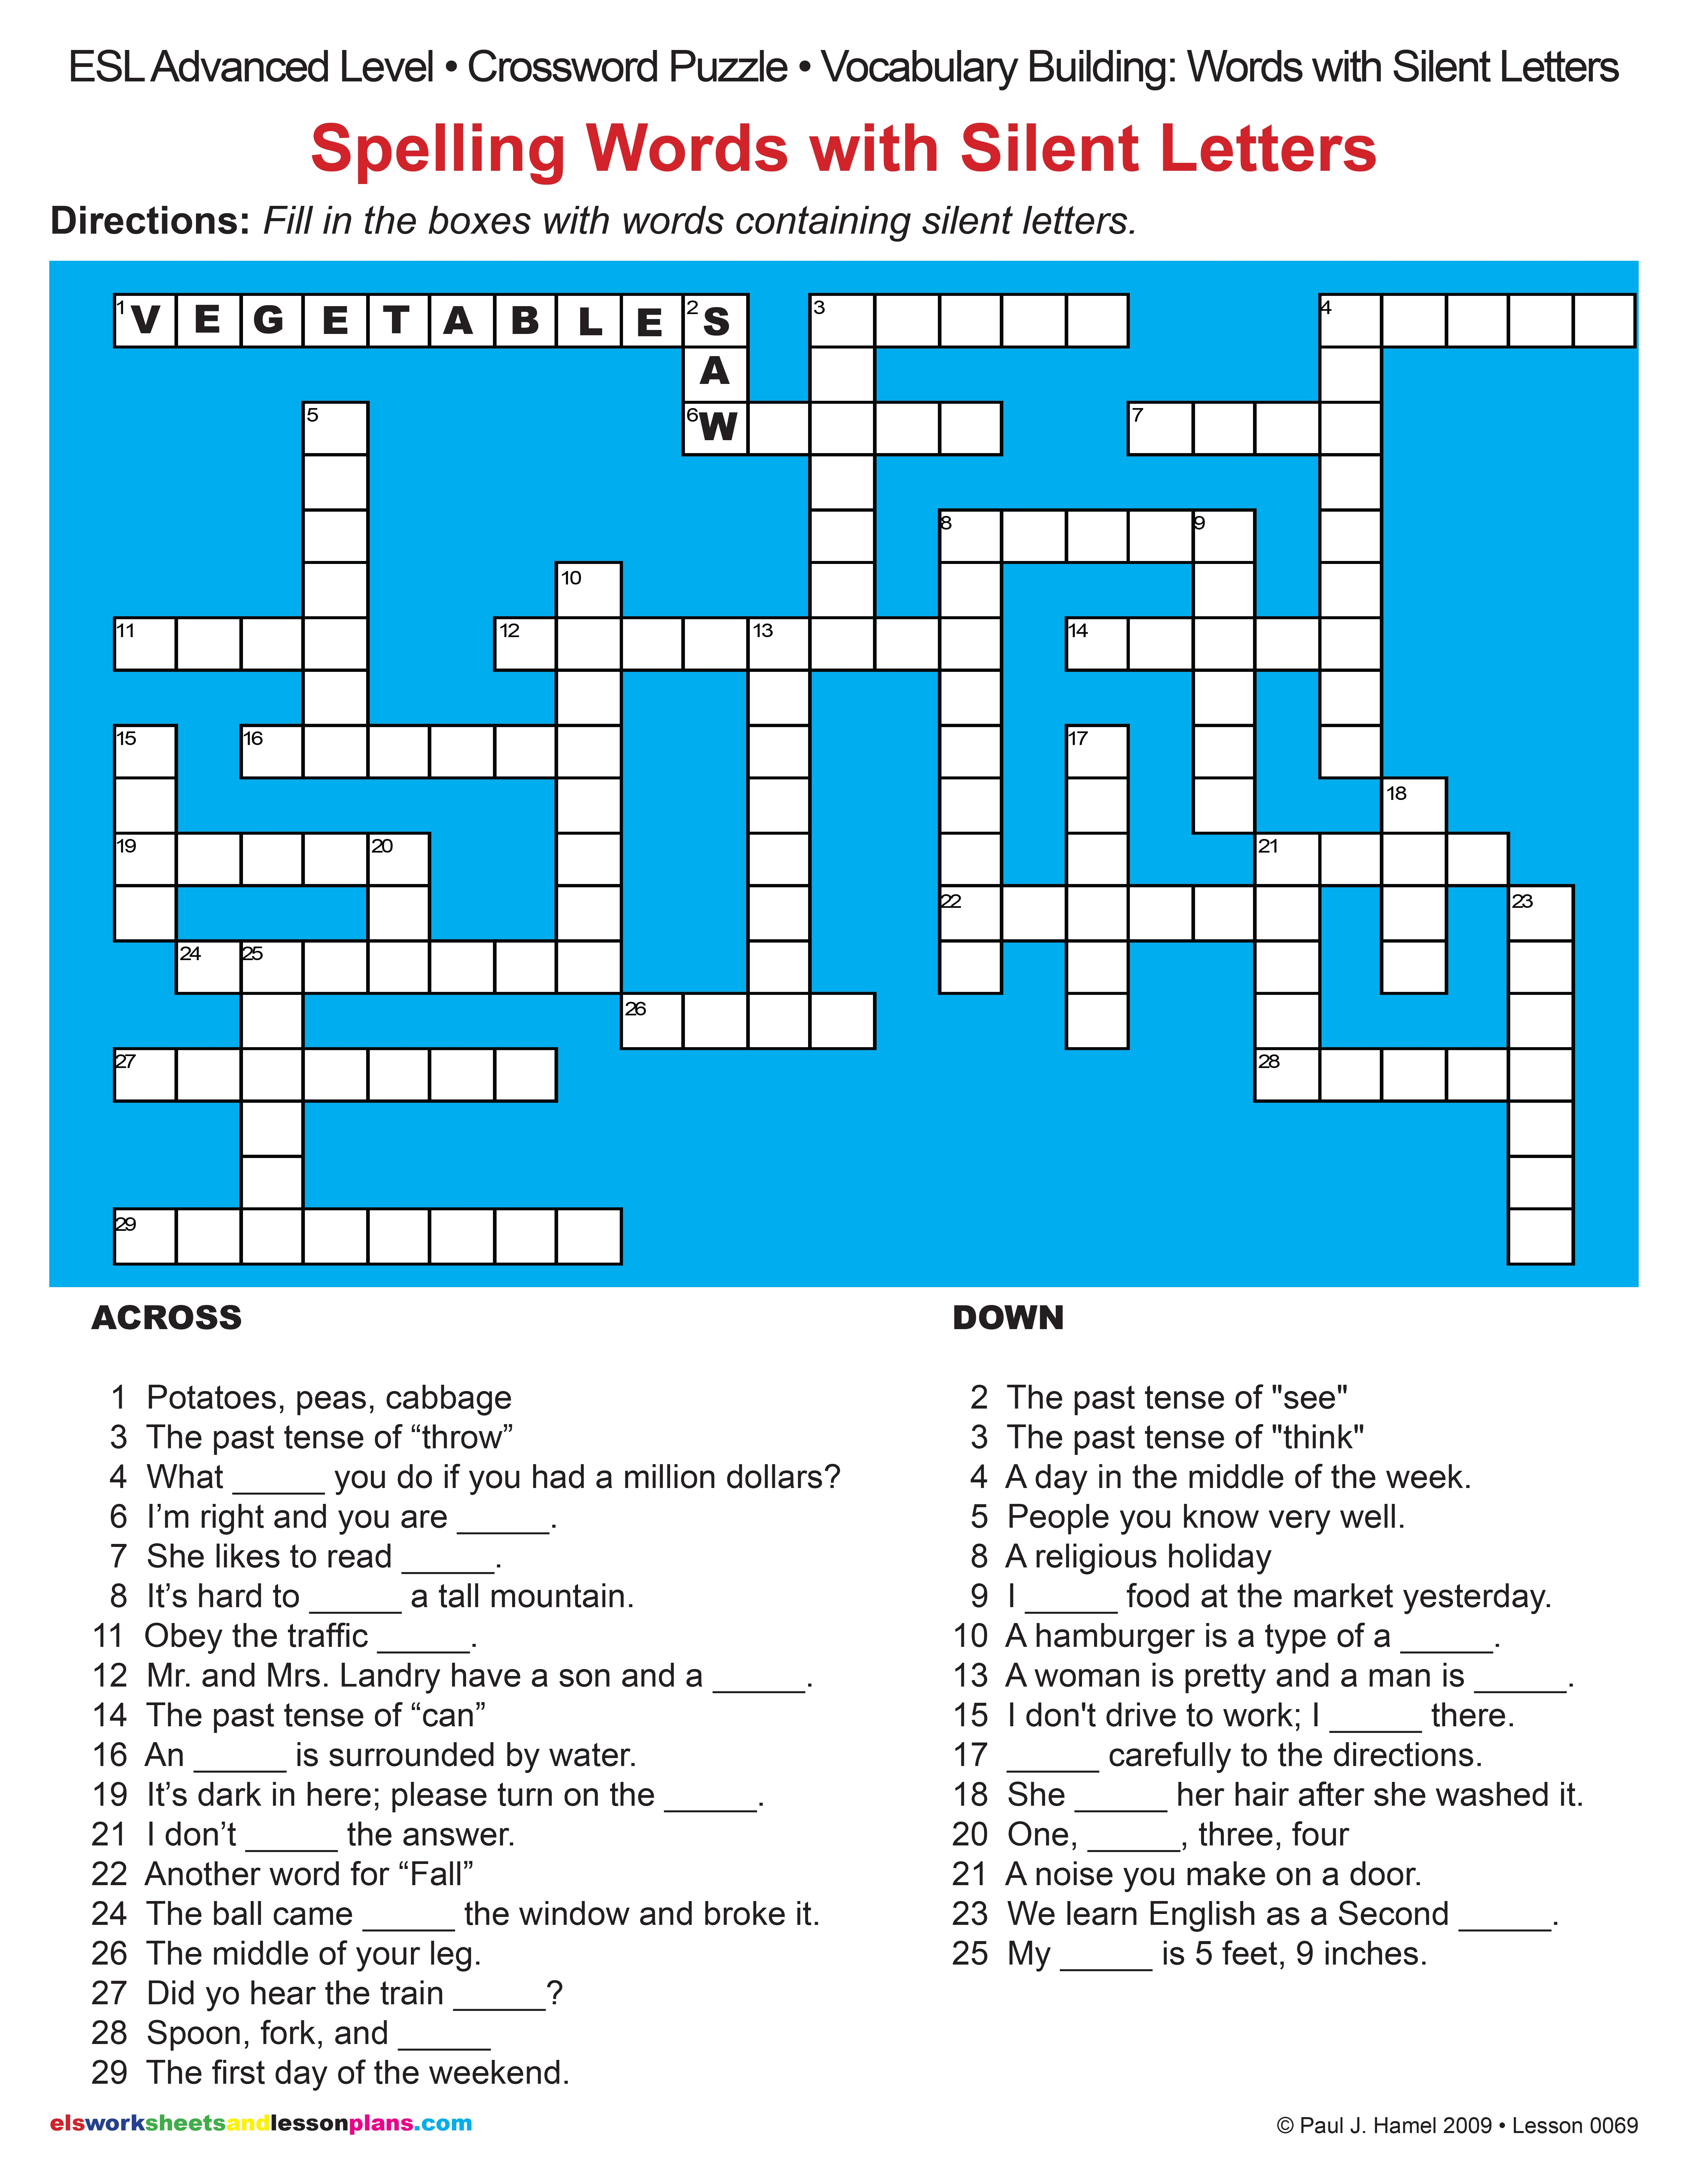 Esl Spelling Words With Silent Letters Crossword